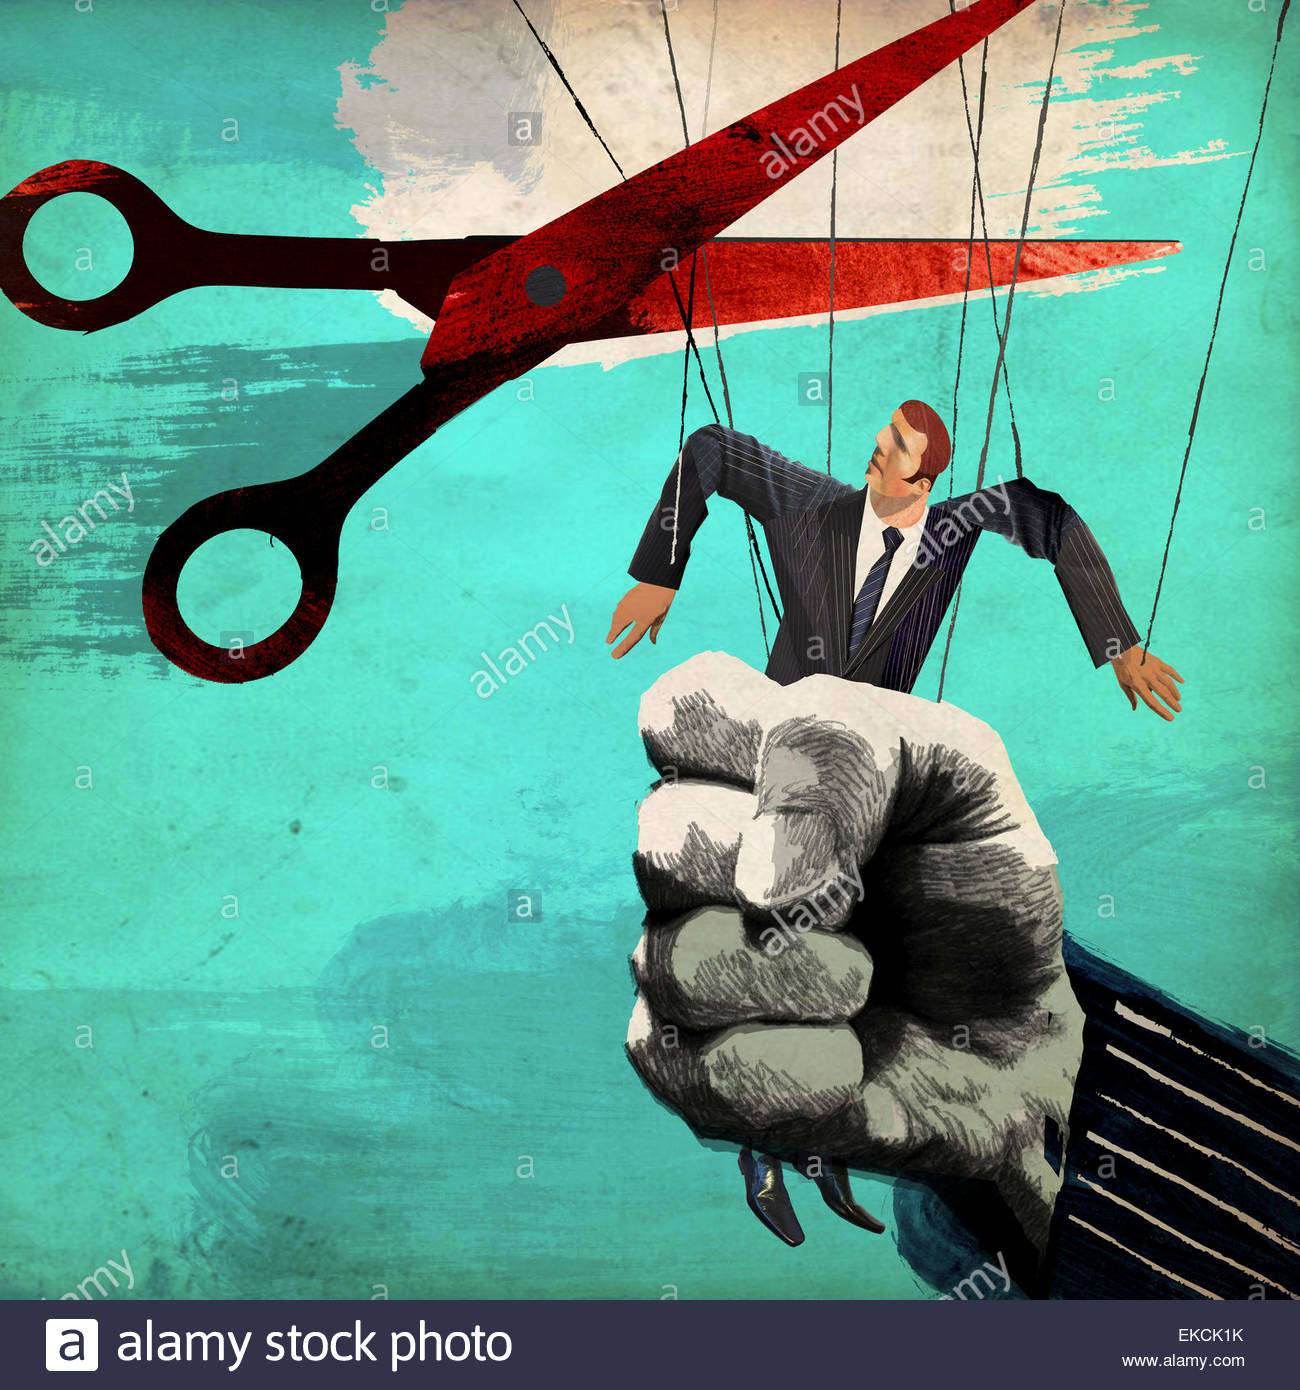 Scissors cutting puppet strings from businessman being squeezed in large fist - Stock Image